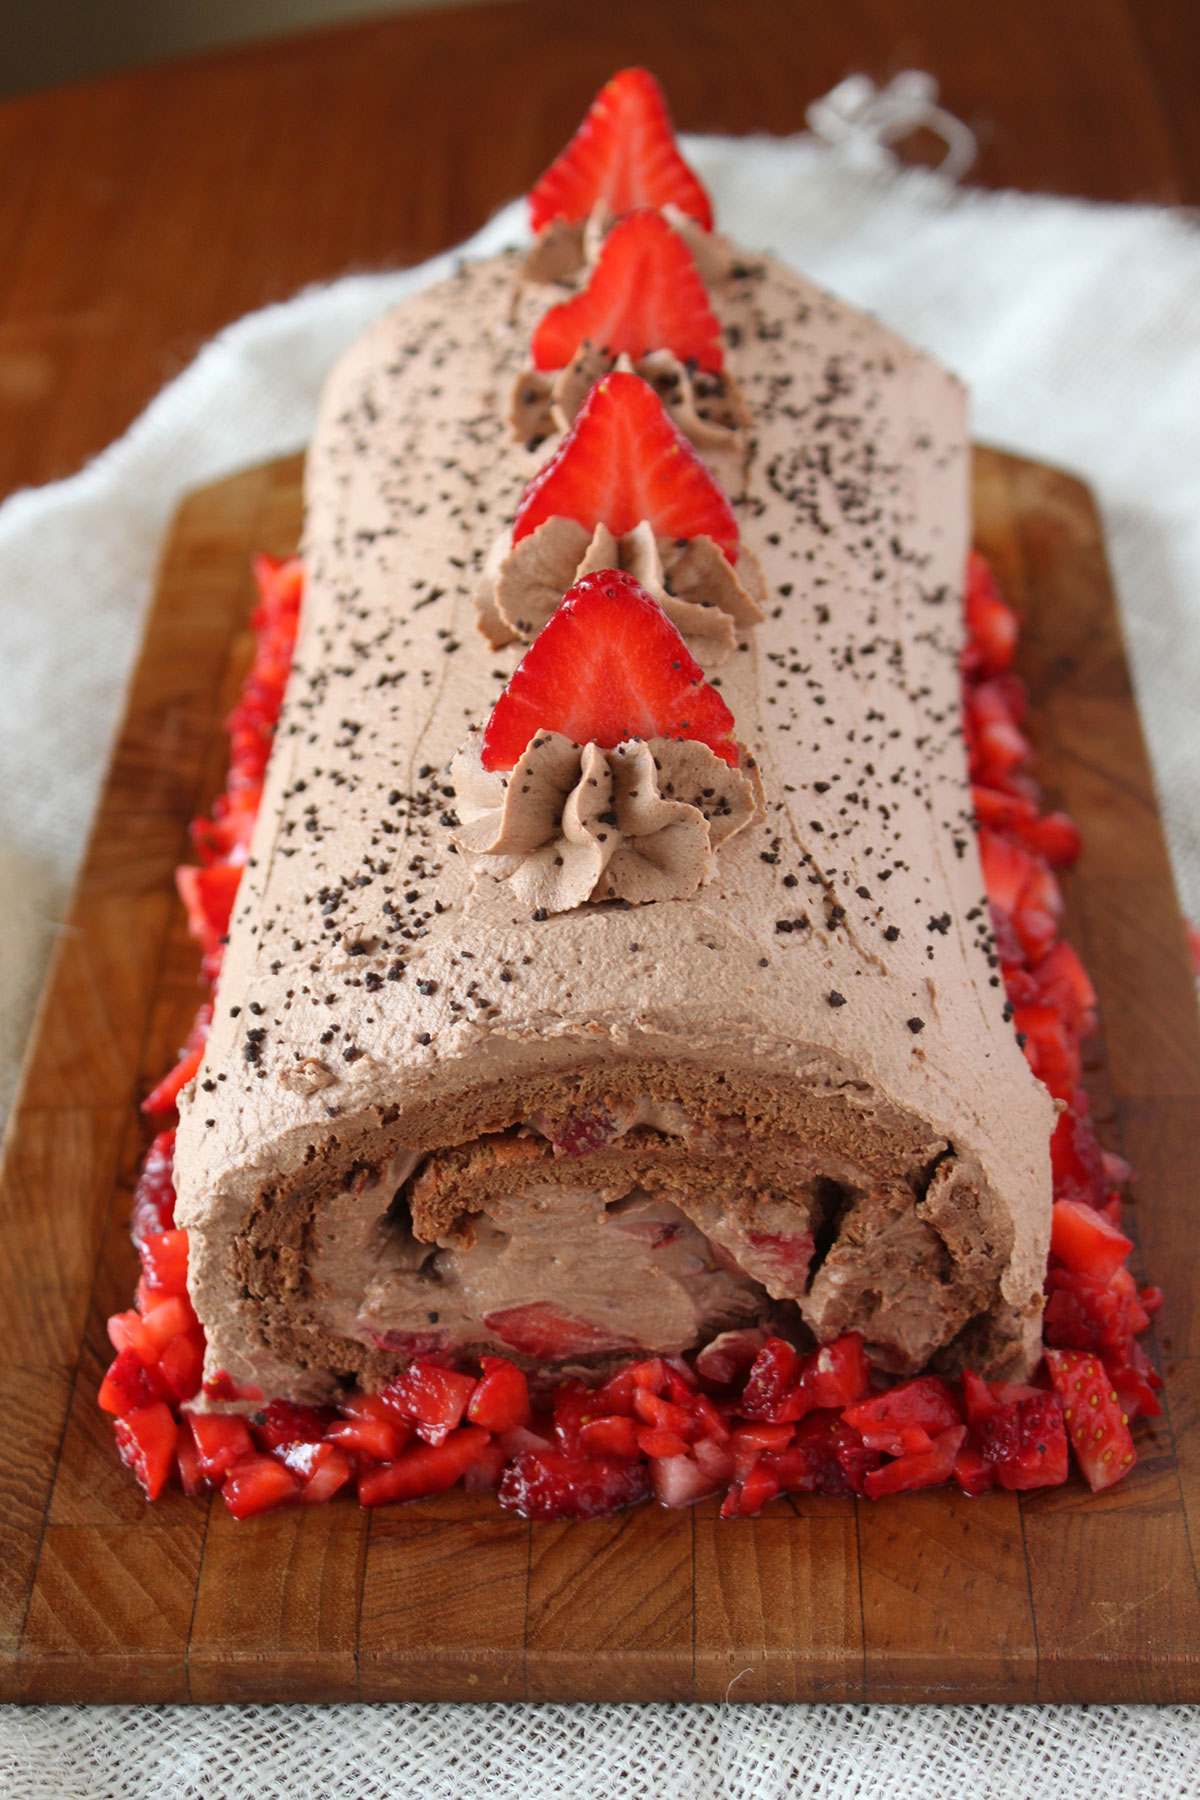 Chocolate Strawberry Roll Cake- Paint the Gown Red